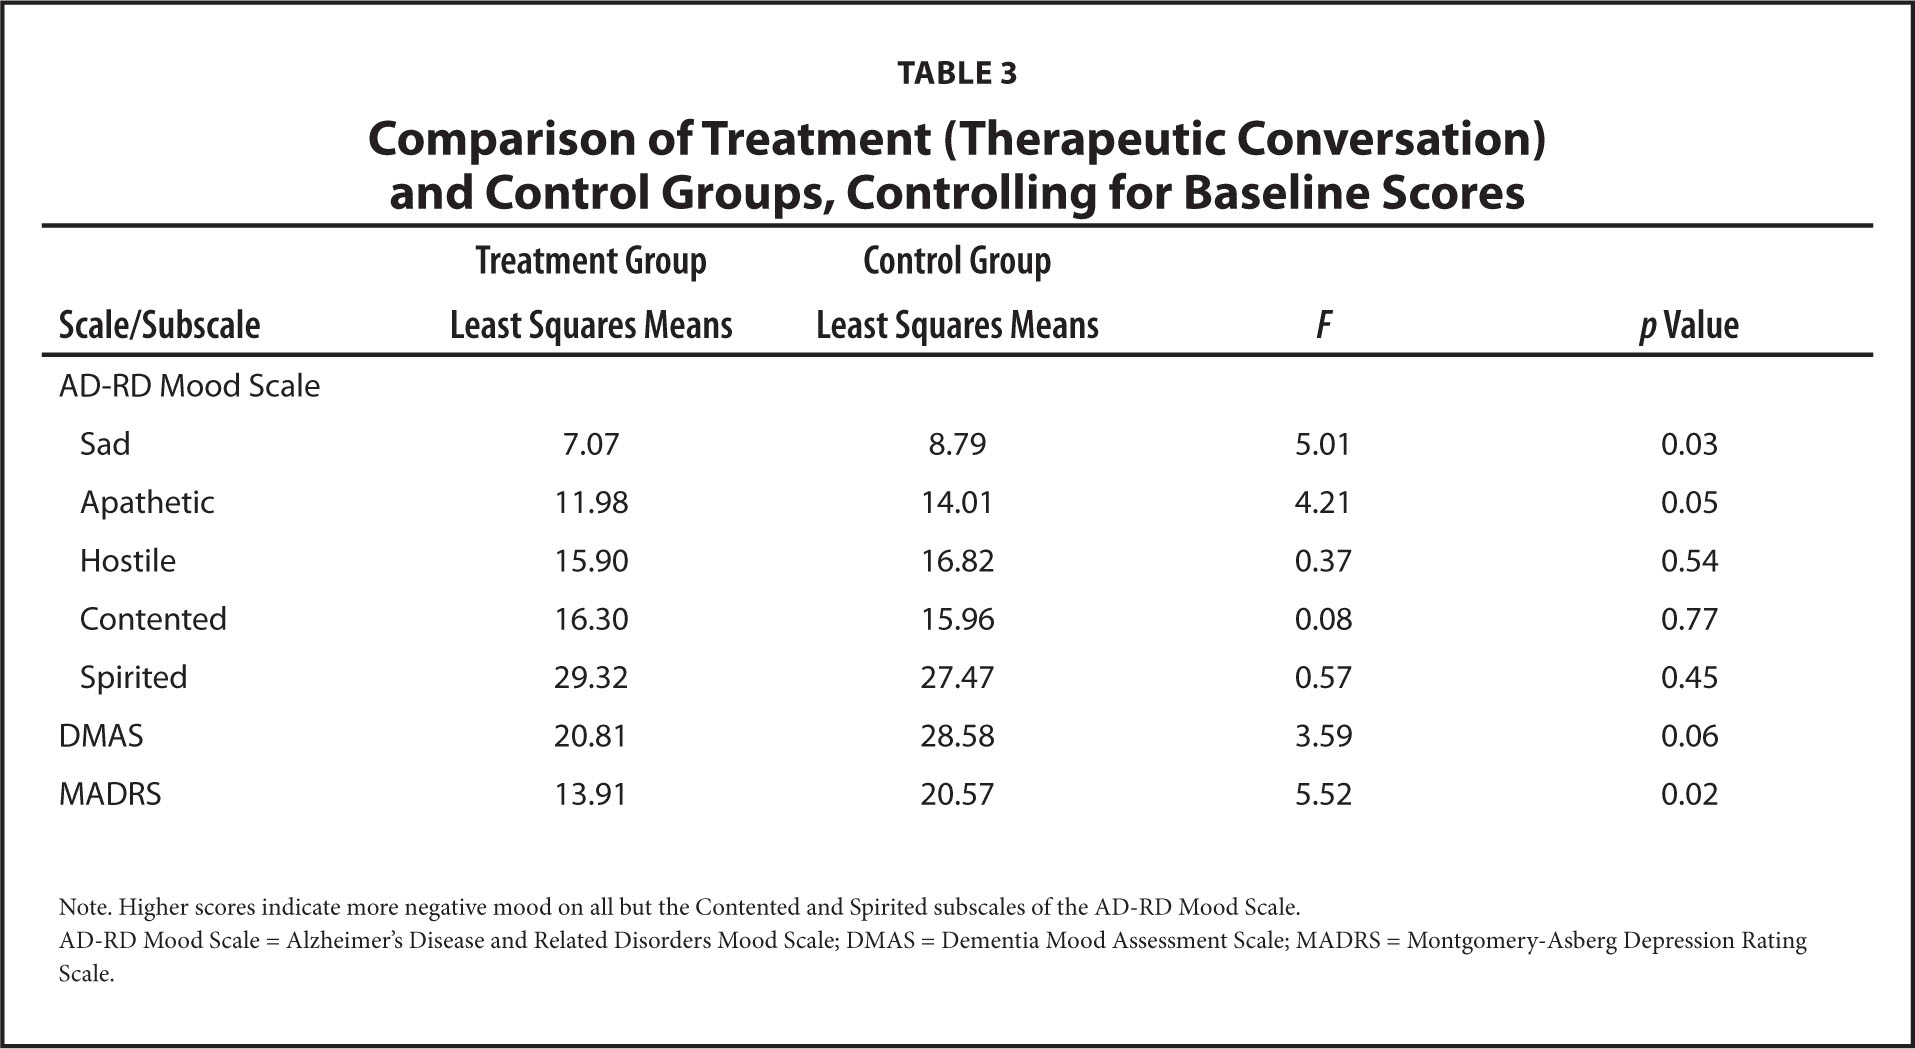 Comparison of Treatment (Therapeutic Conversation) and Control Groups, Controlling for Baseline Scores